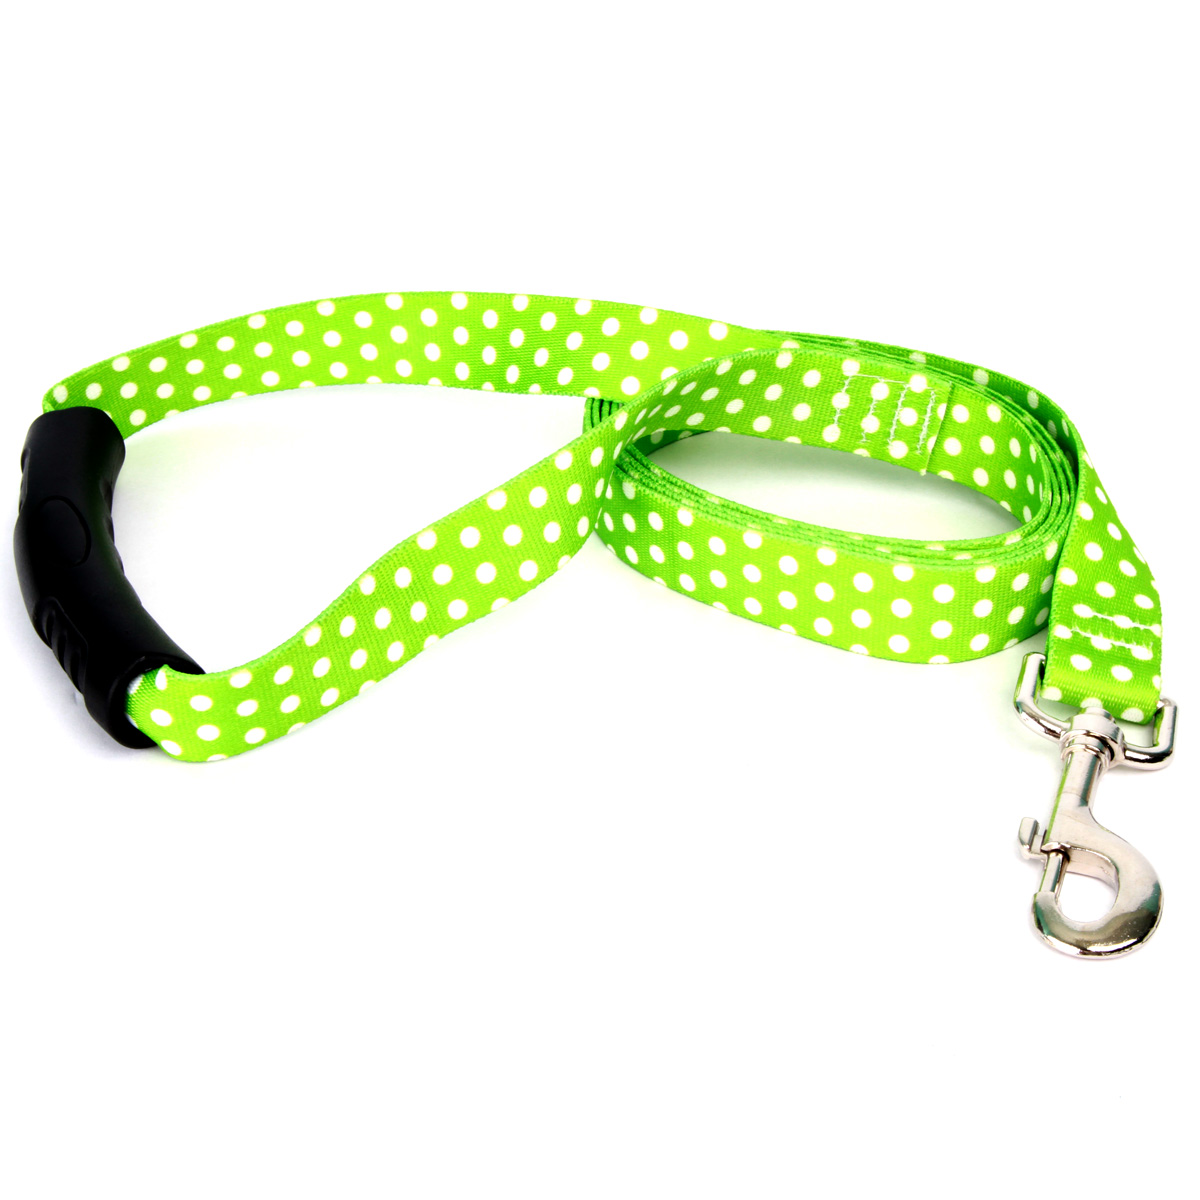 Green Polka Dot EZ-Lead